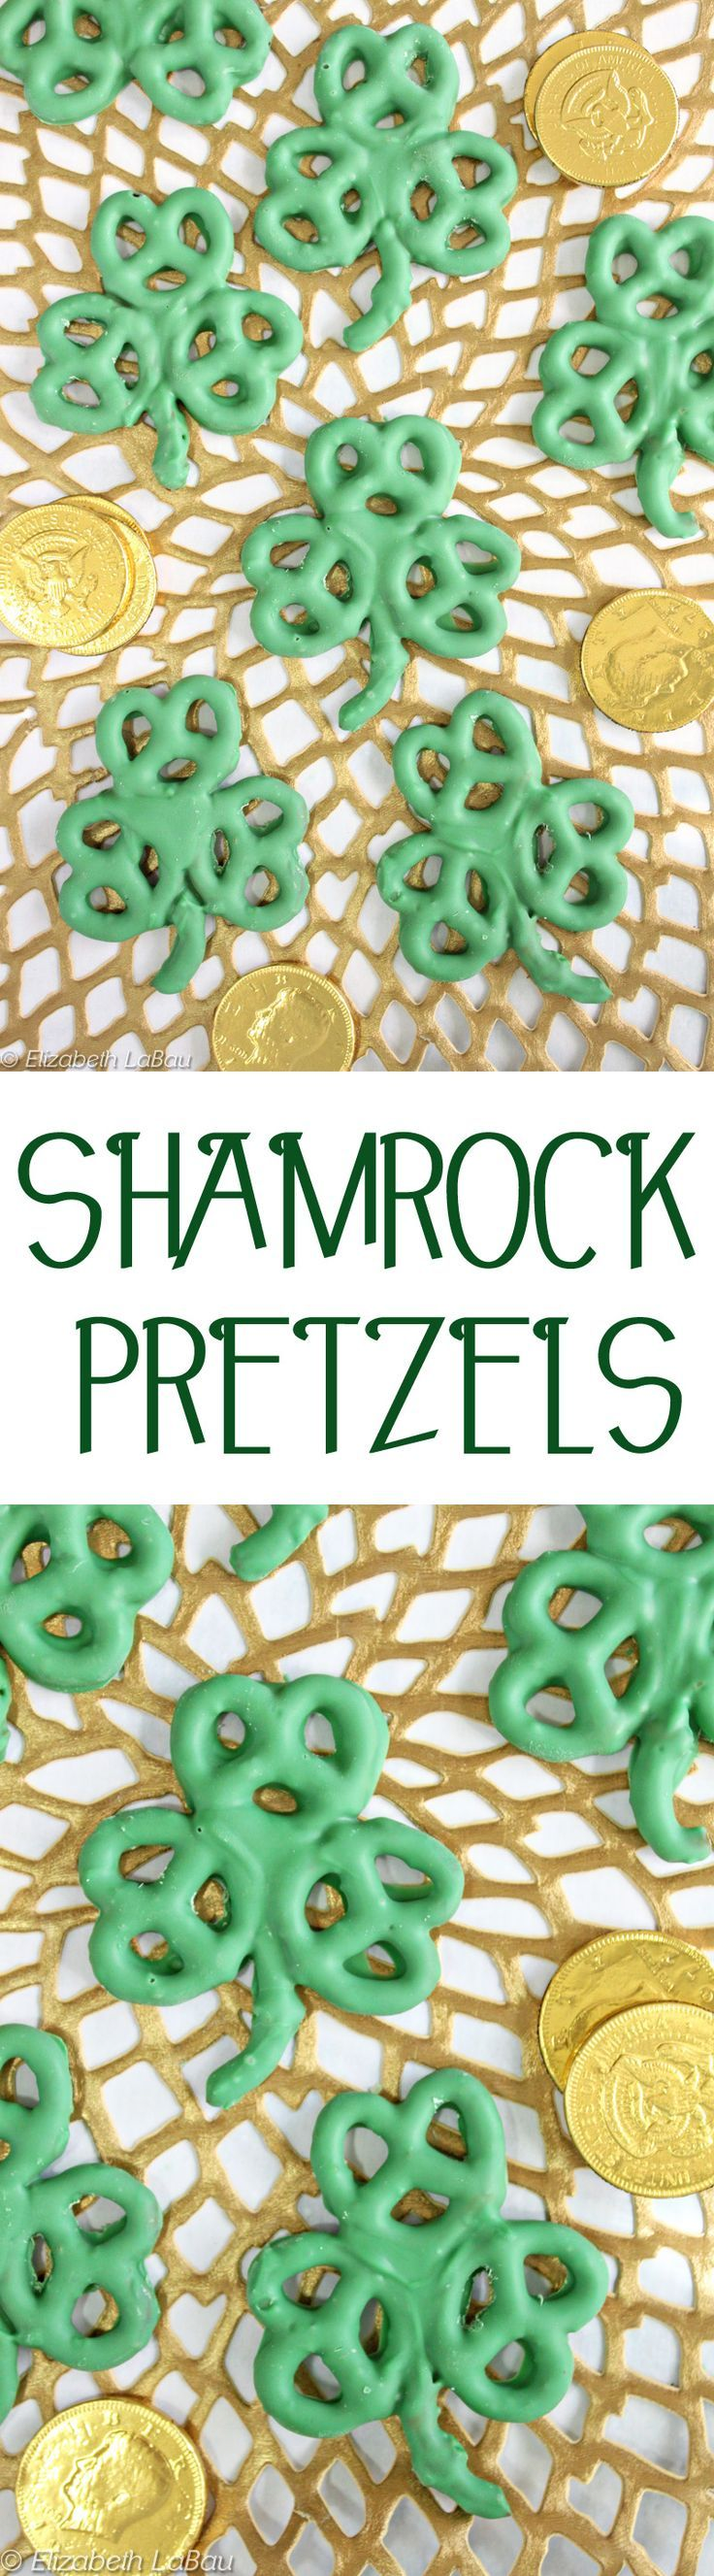 Shamrock Pretzels are a super easy St. Patrick's Day candy! Just 2 ingredients and 10 minutes to make these cute treats--and they're great for kids to help with, too! | From http://candy.about.com